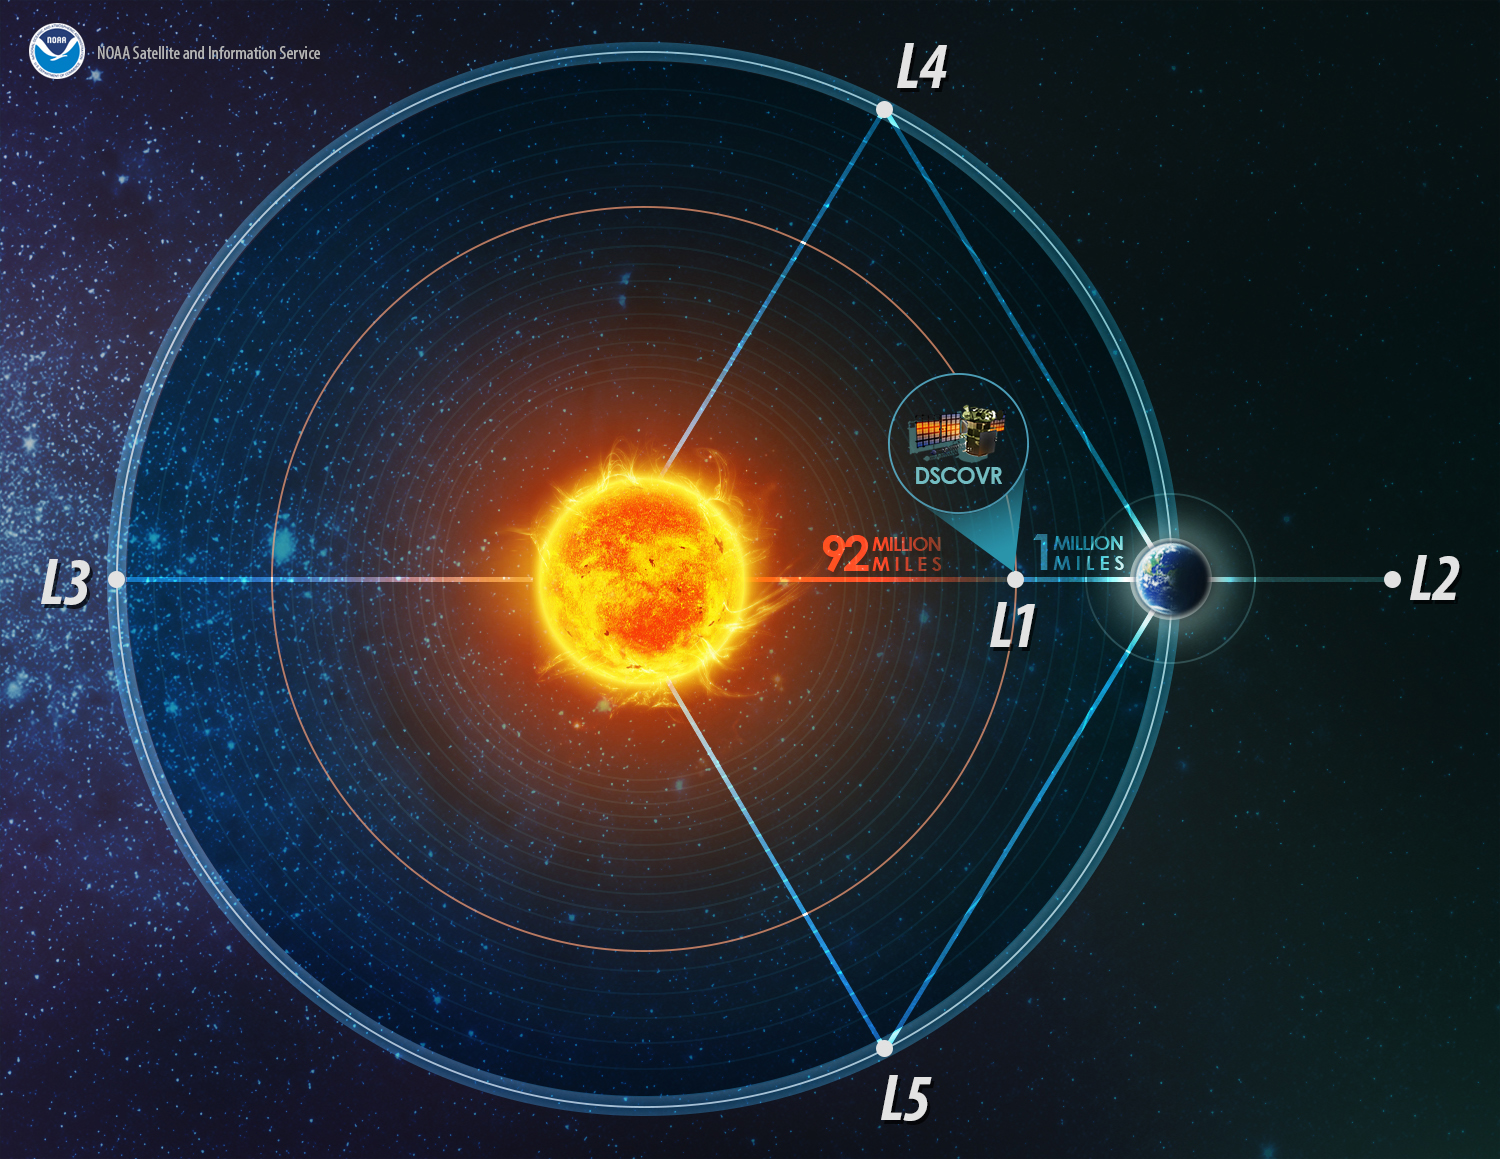 Lagrange Points of the Earth-Sun system (not drawn to scale). Credit: NOAA